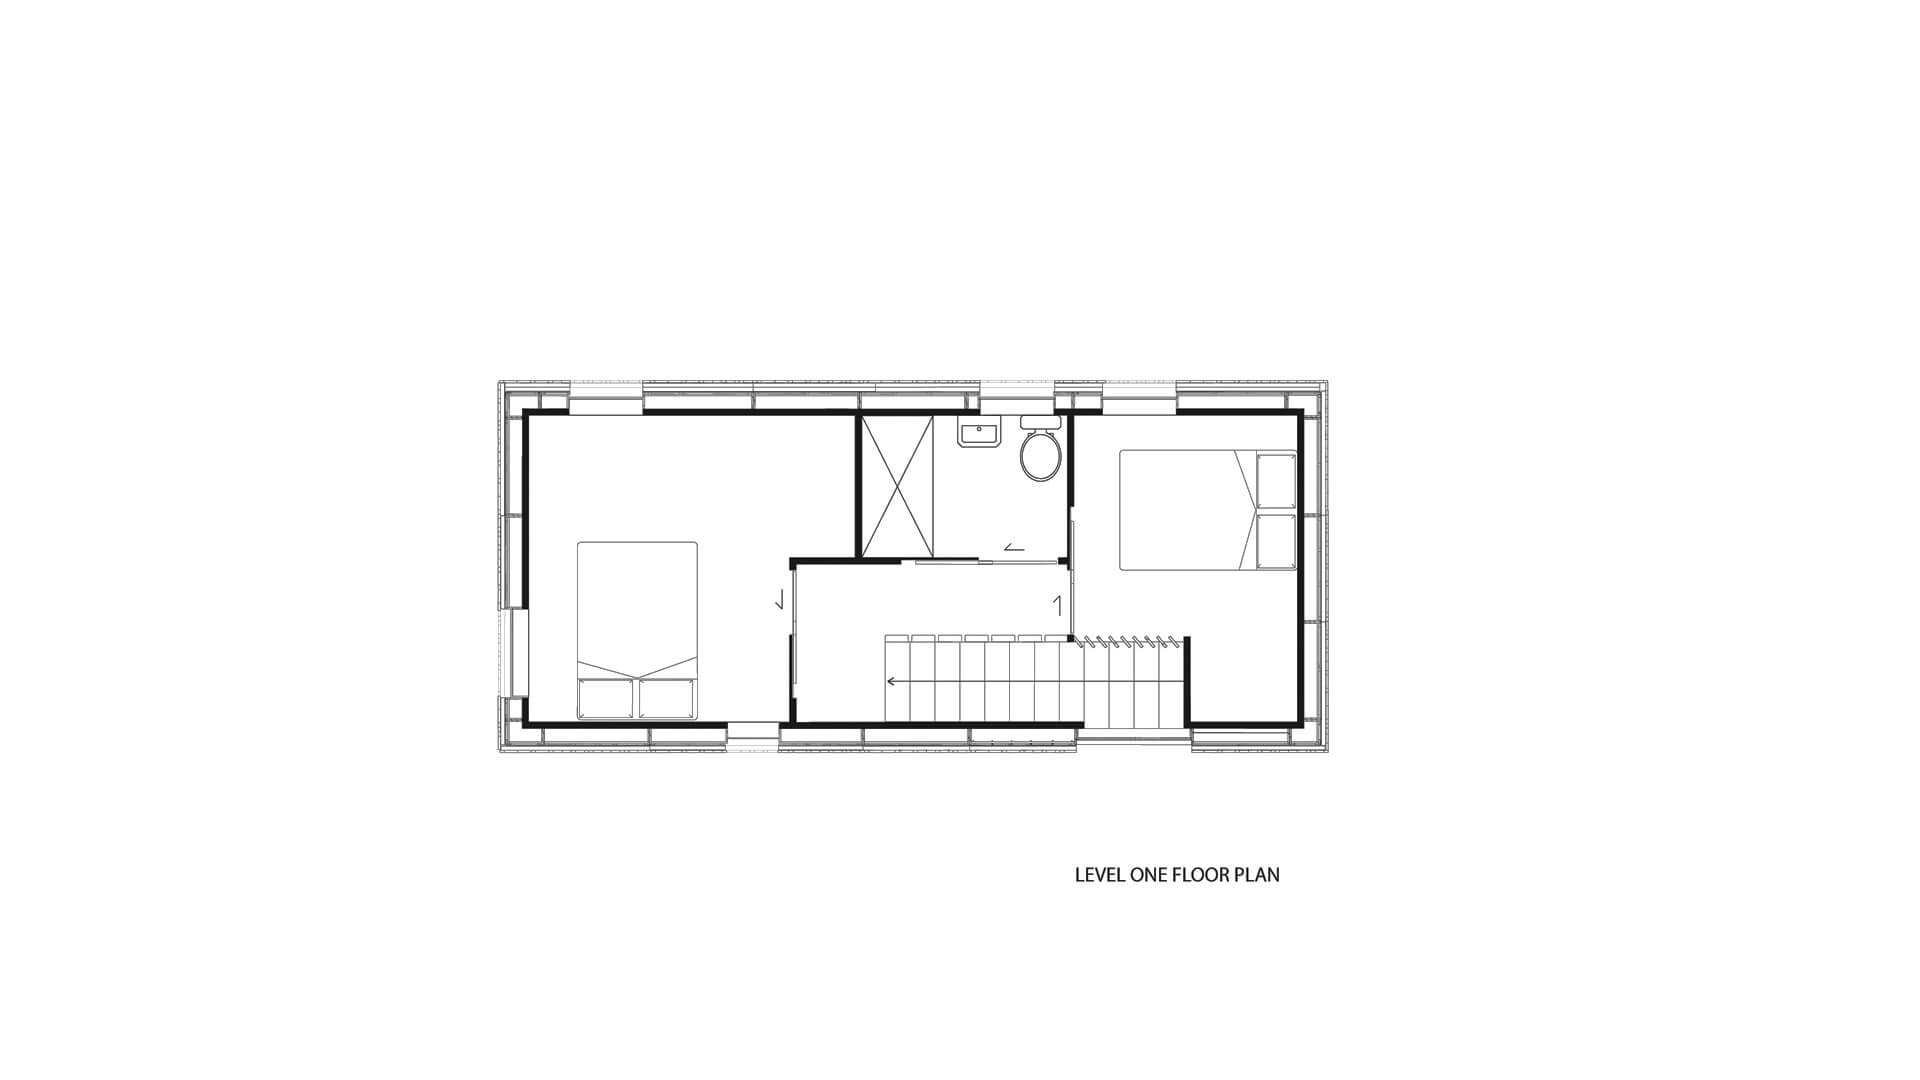 Warrander_Studio_Plans_2014_LVL01_Web